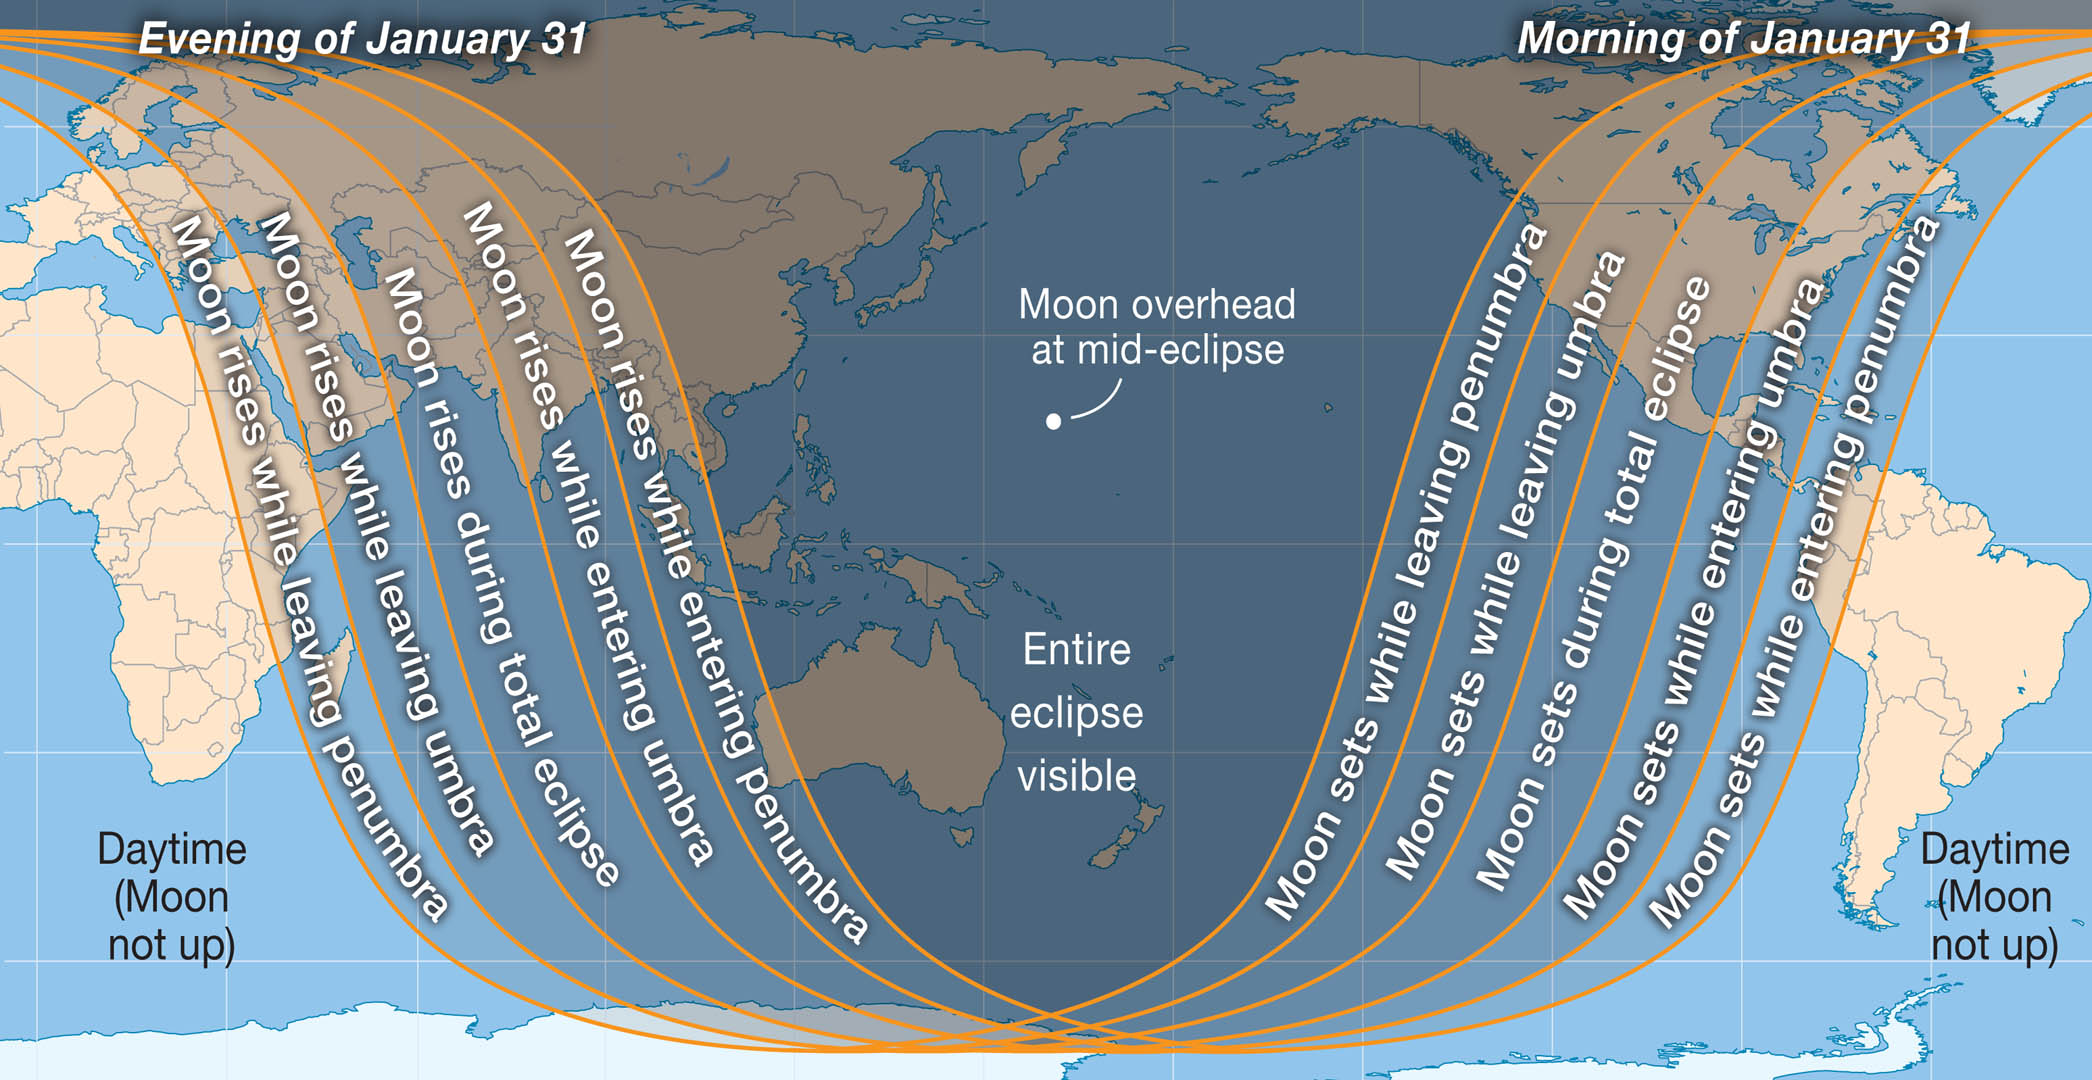 The West Coast Will Have a Perfect View of January 31 Total Lunar